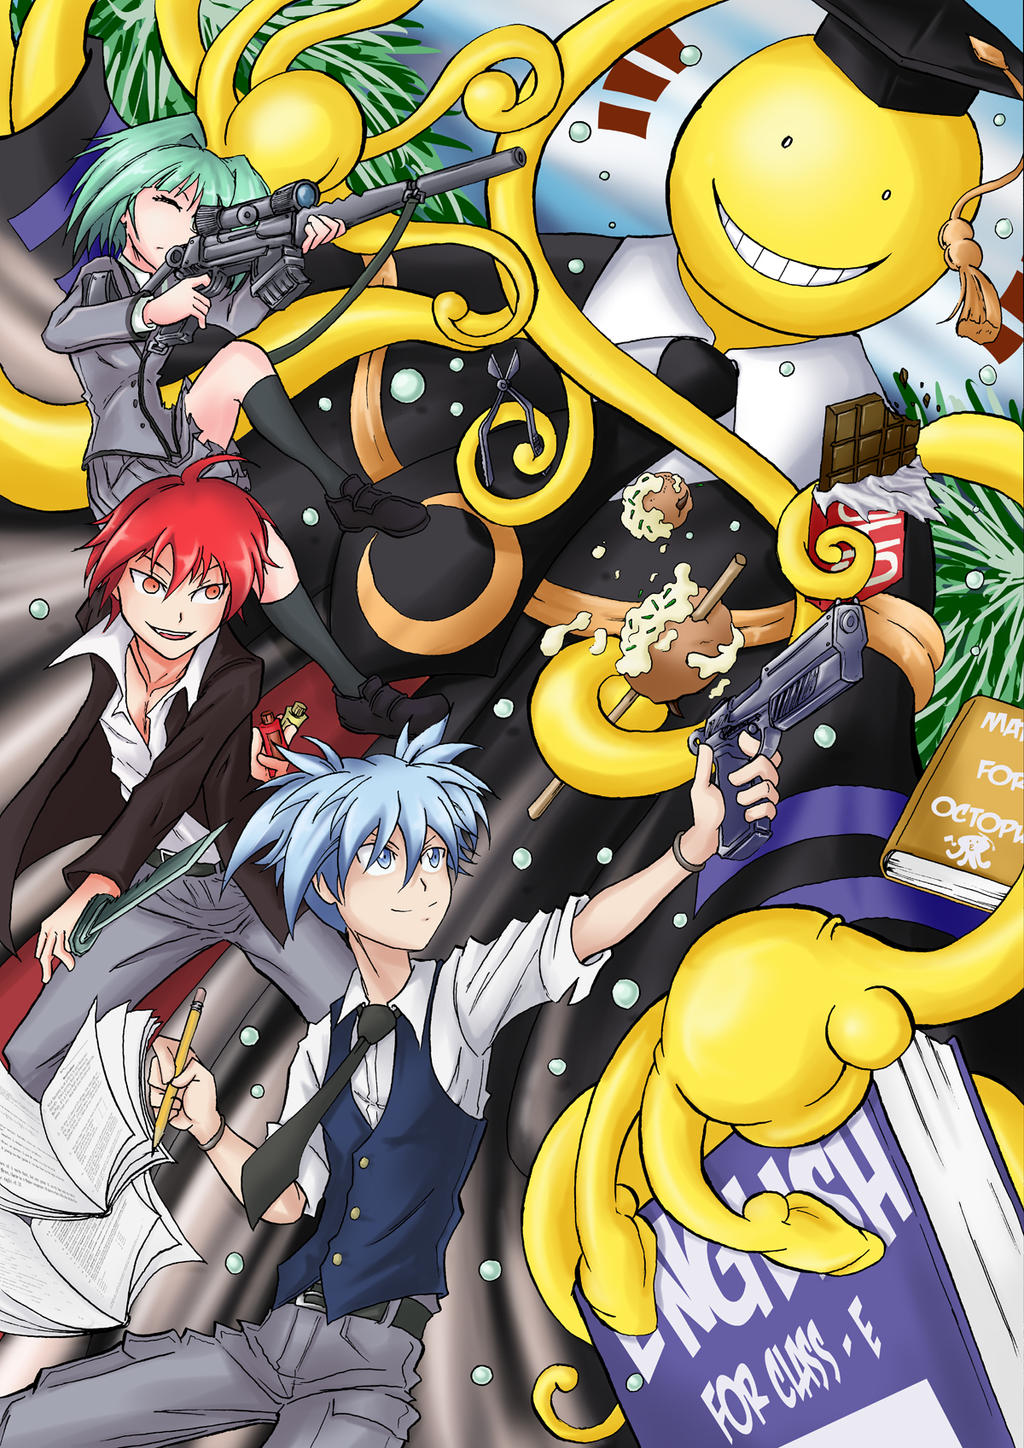 Assassination classroom by vincentstrider on deviantart - Anime wallpaper assassination classroom ...